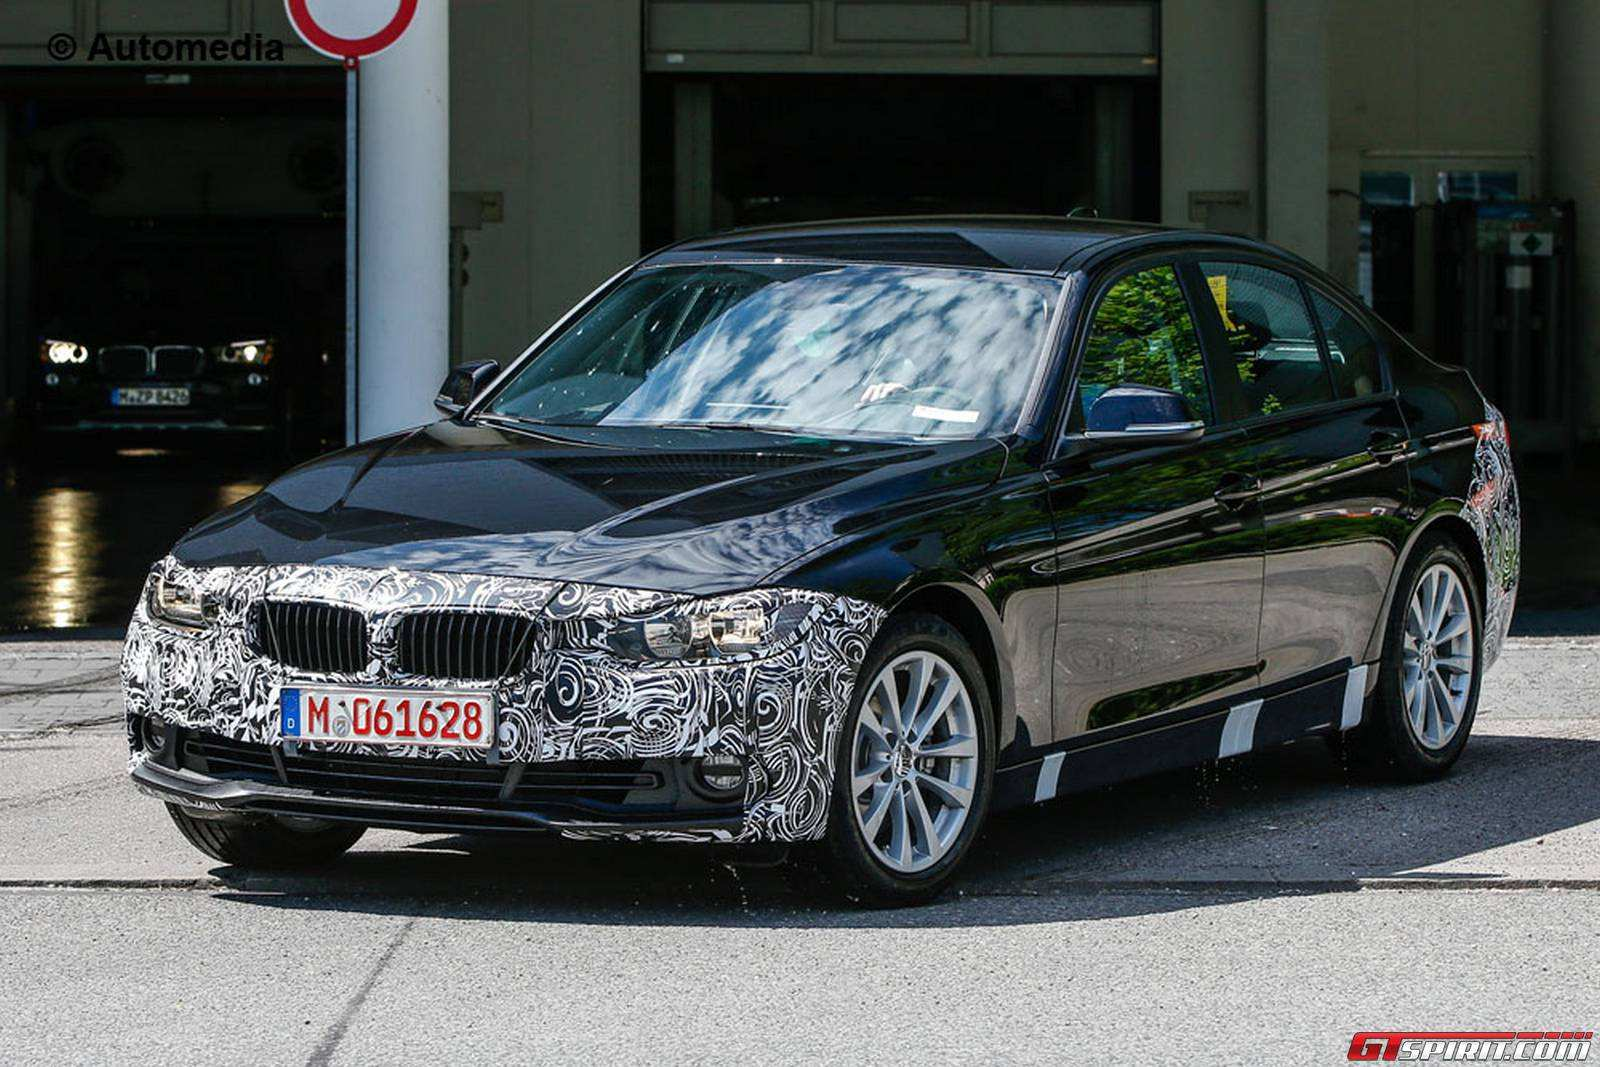 94 Concept of Spy Shots Bmw 3 Series Specs and Review for Spy Shots Bmw 3 Series